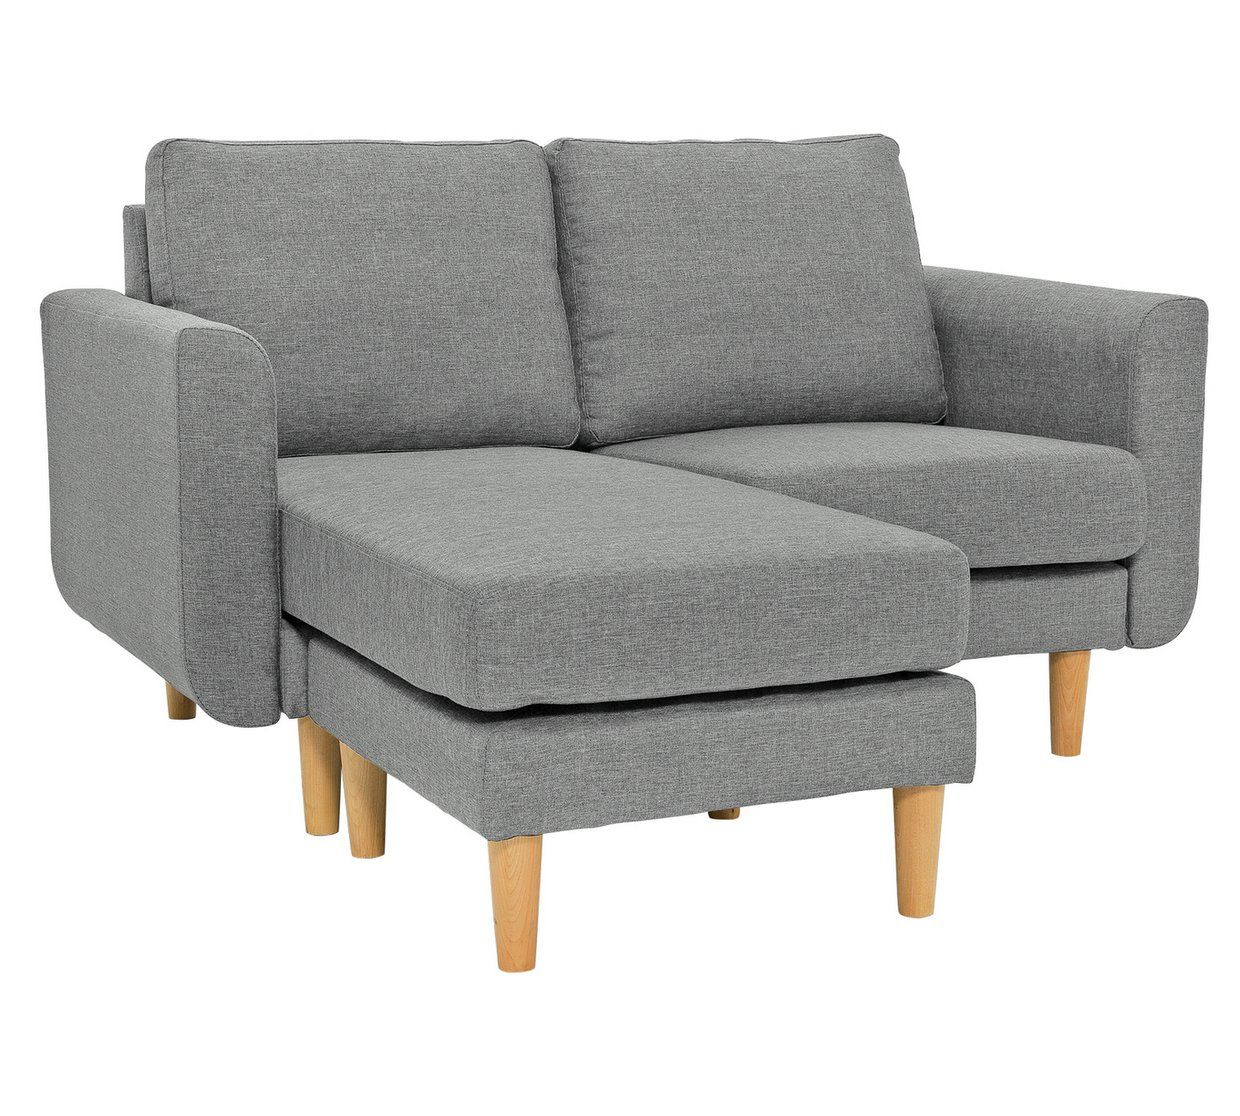 Buy Argos Home Remi 2 Seater Fabric Chaise In A Box Light Grey Sofas Argos Light Gray Sofas Argos Home Chaise